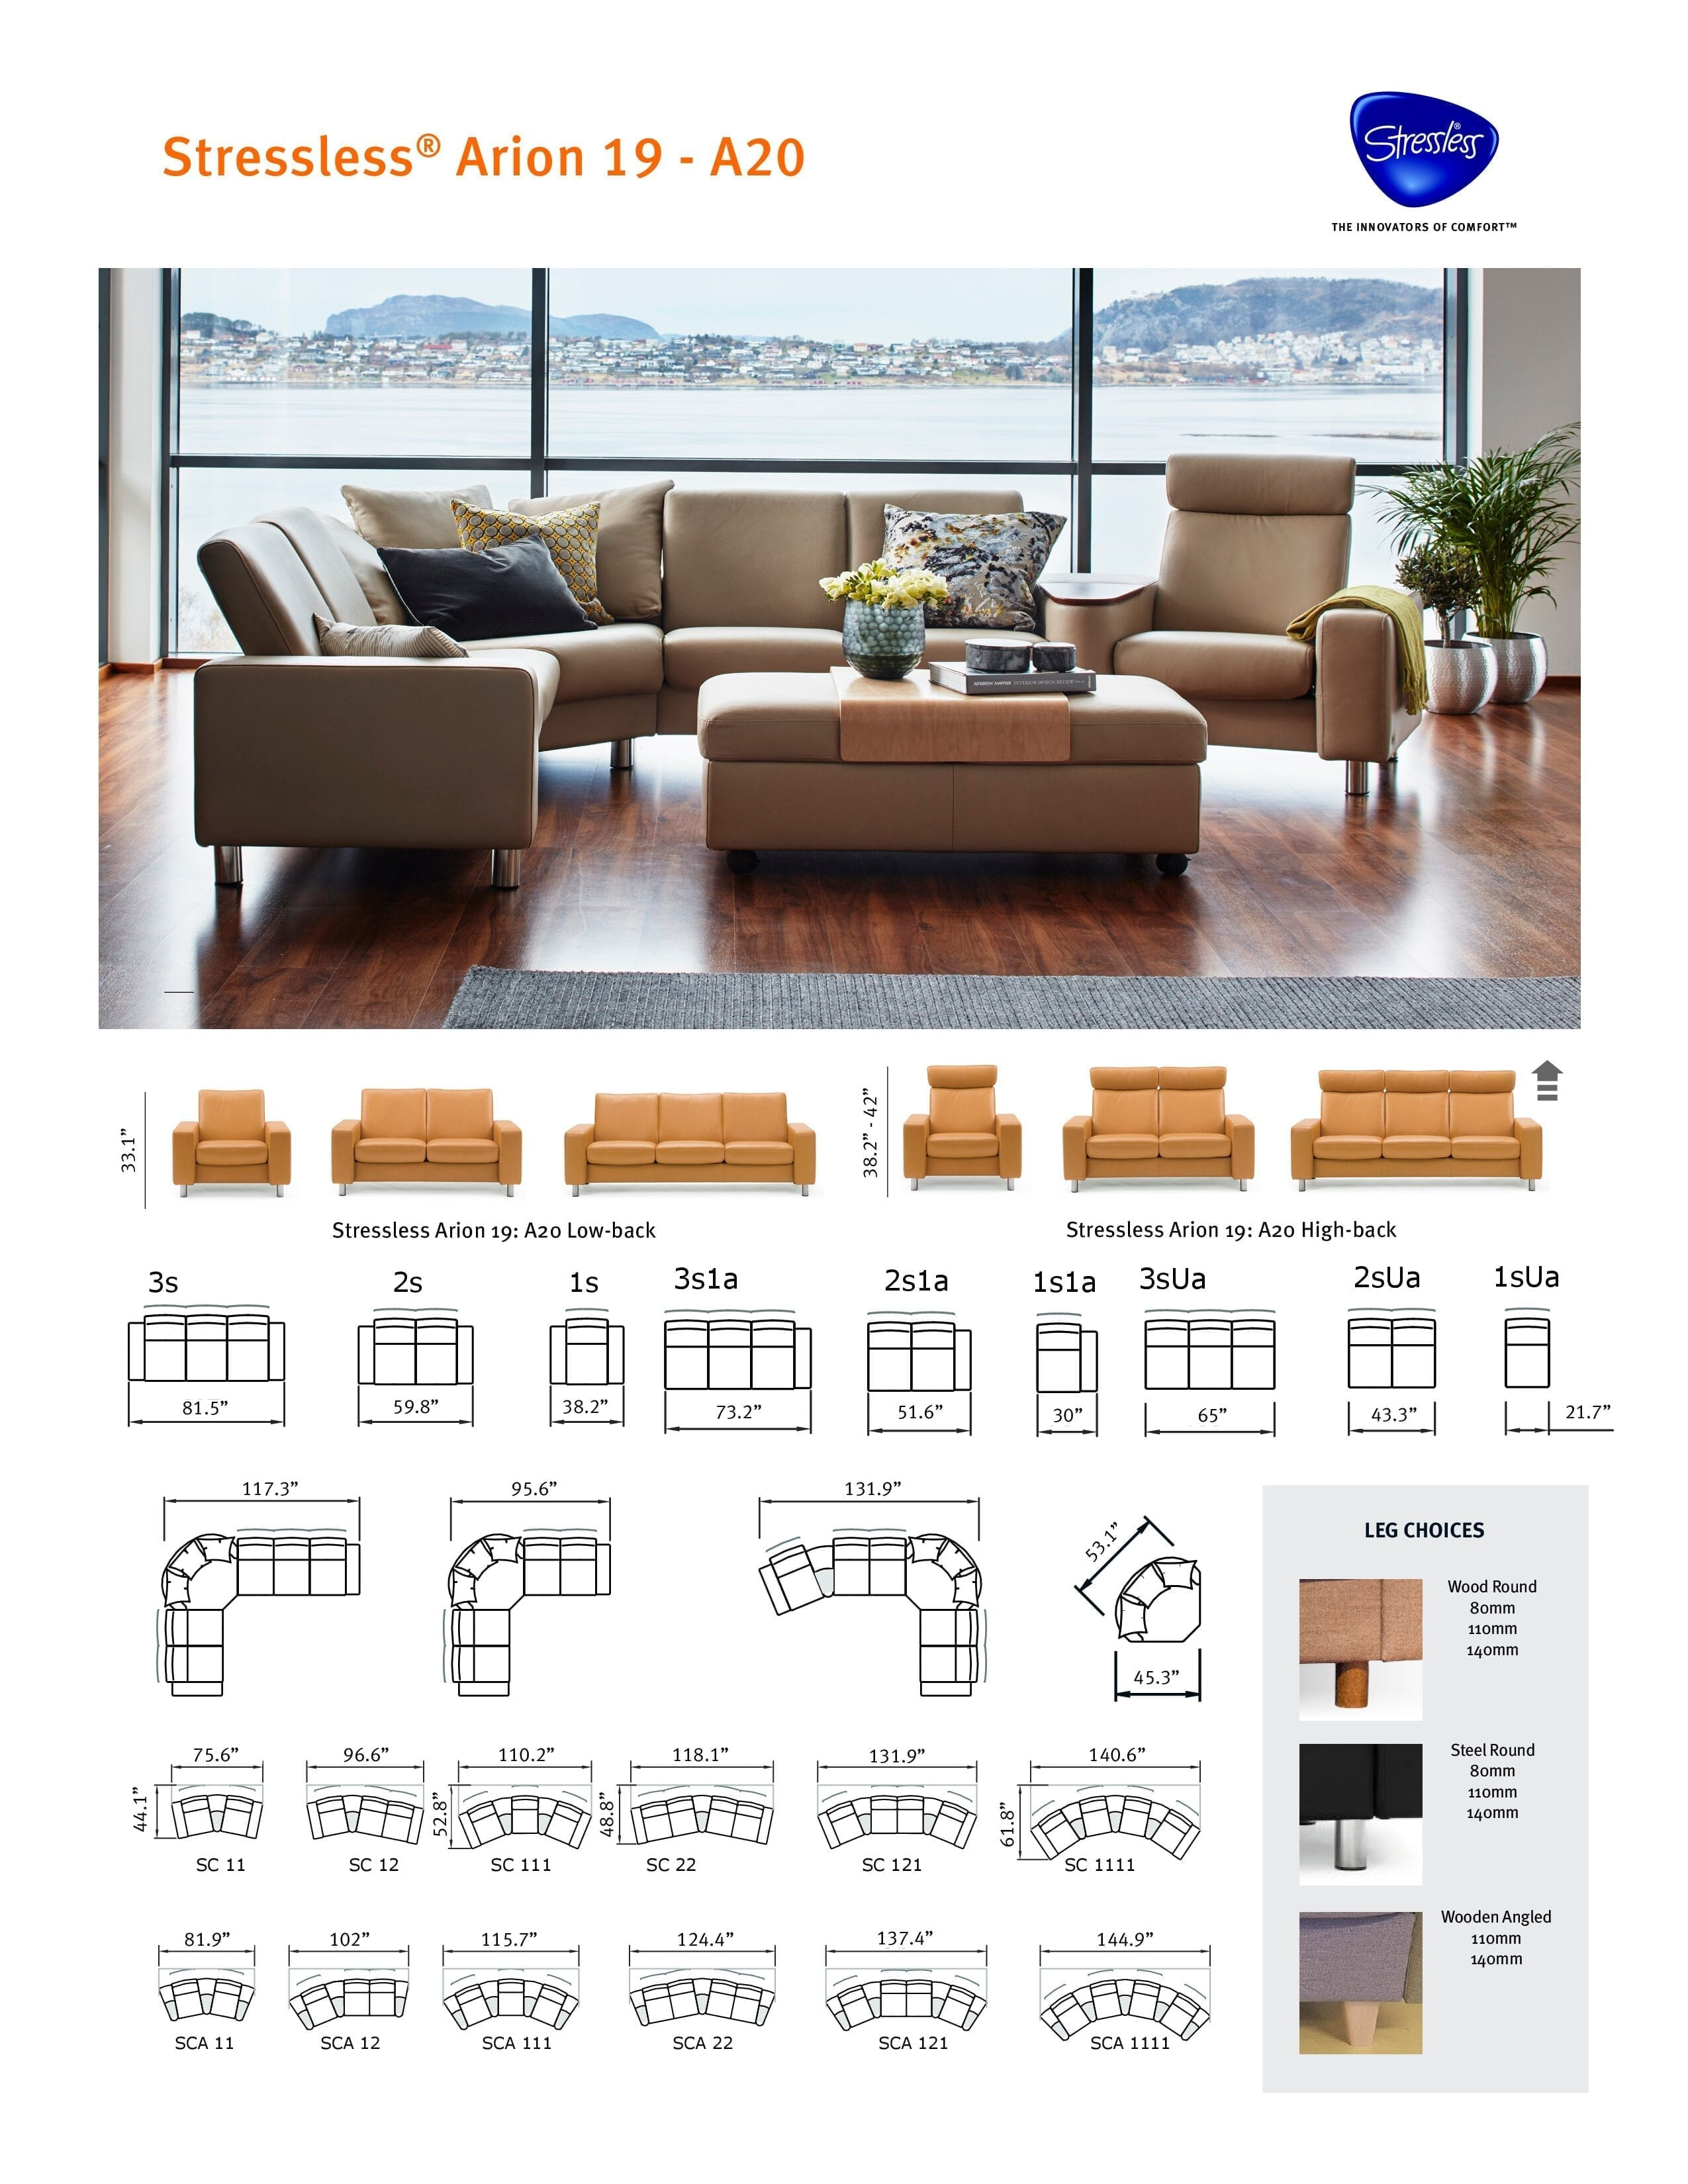 Arion 19 A20 Stressless Product Sheet